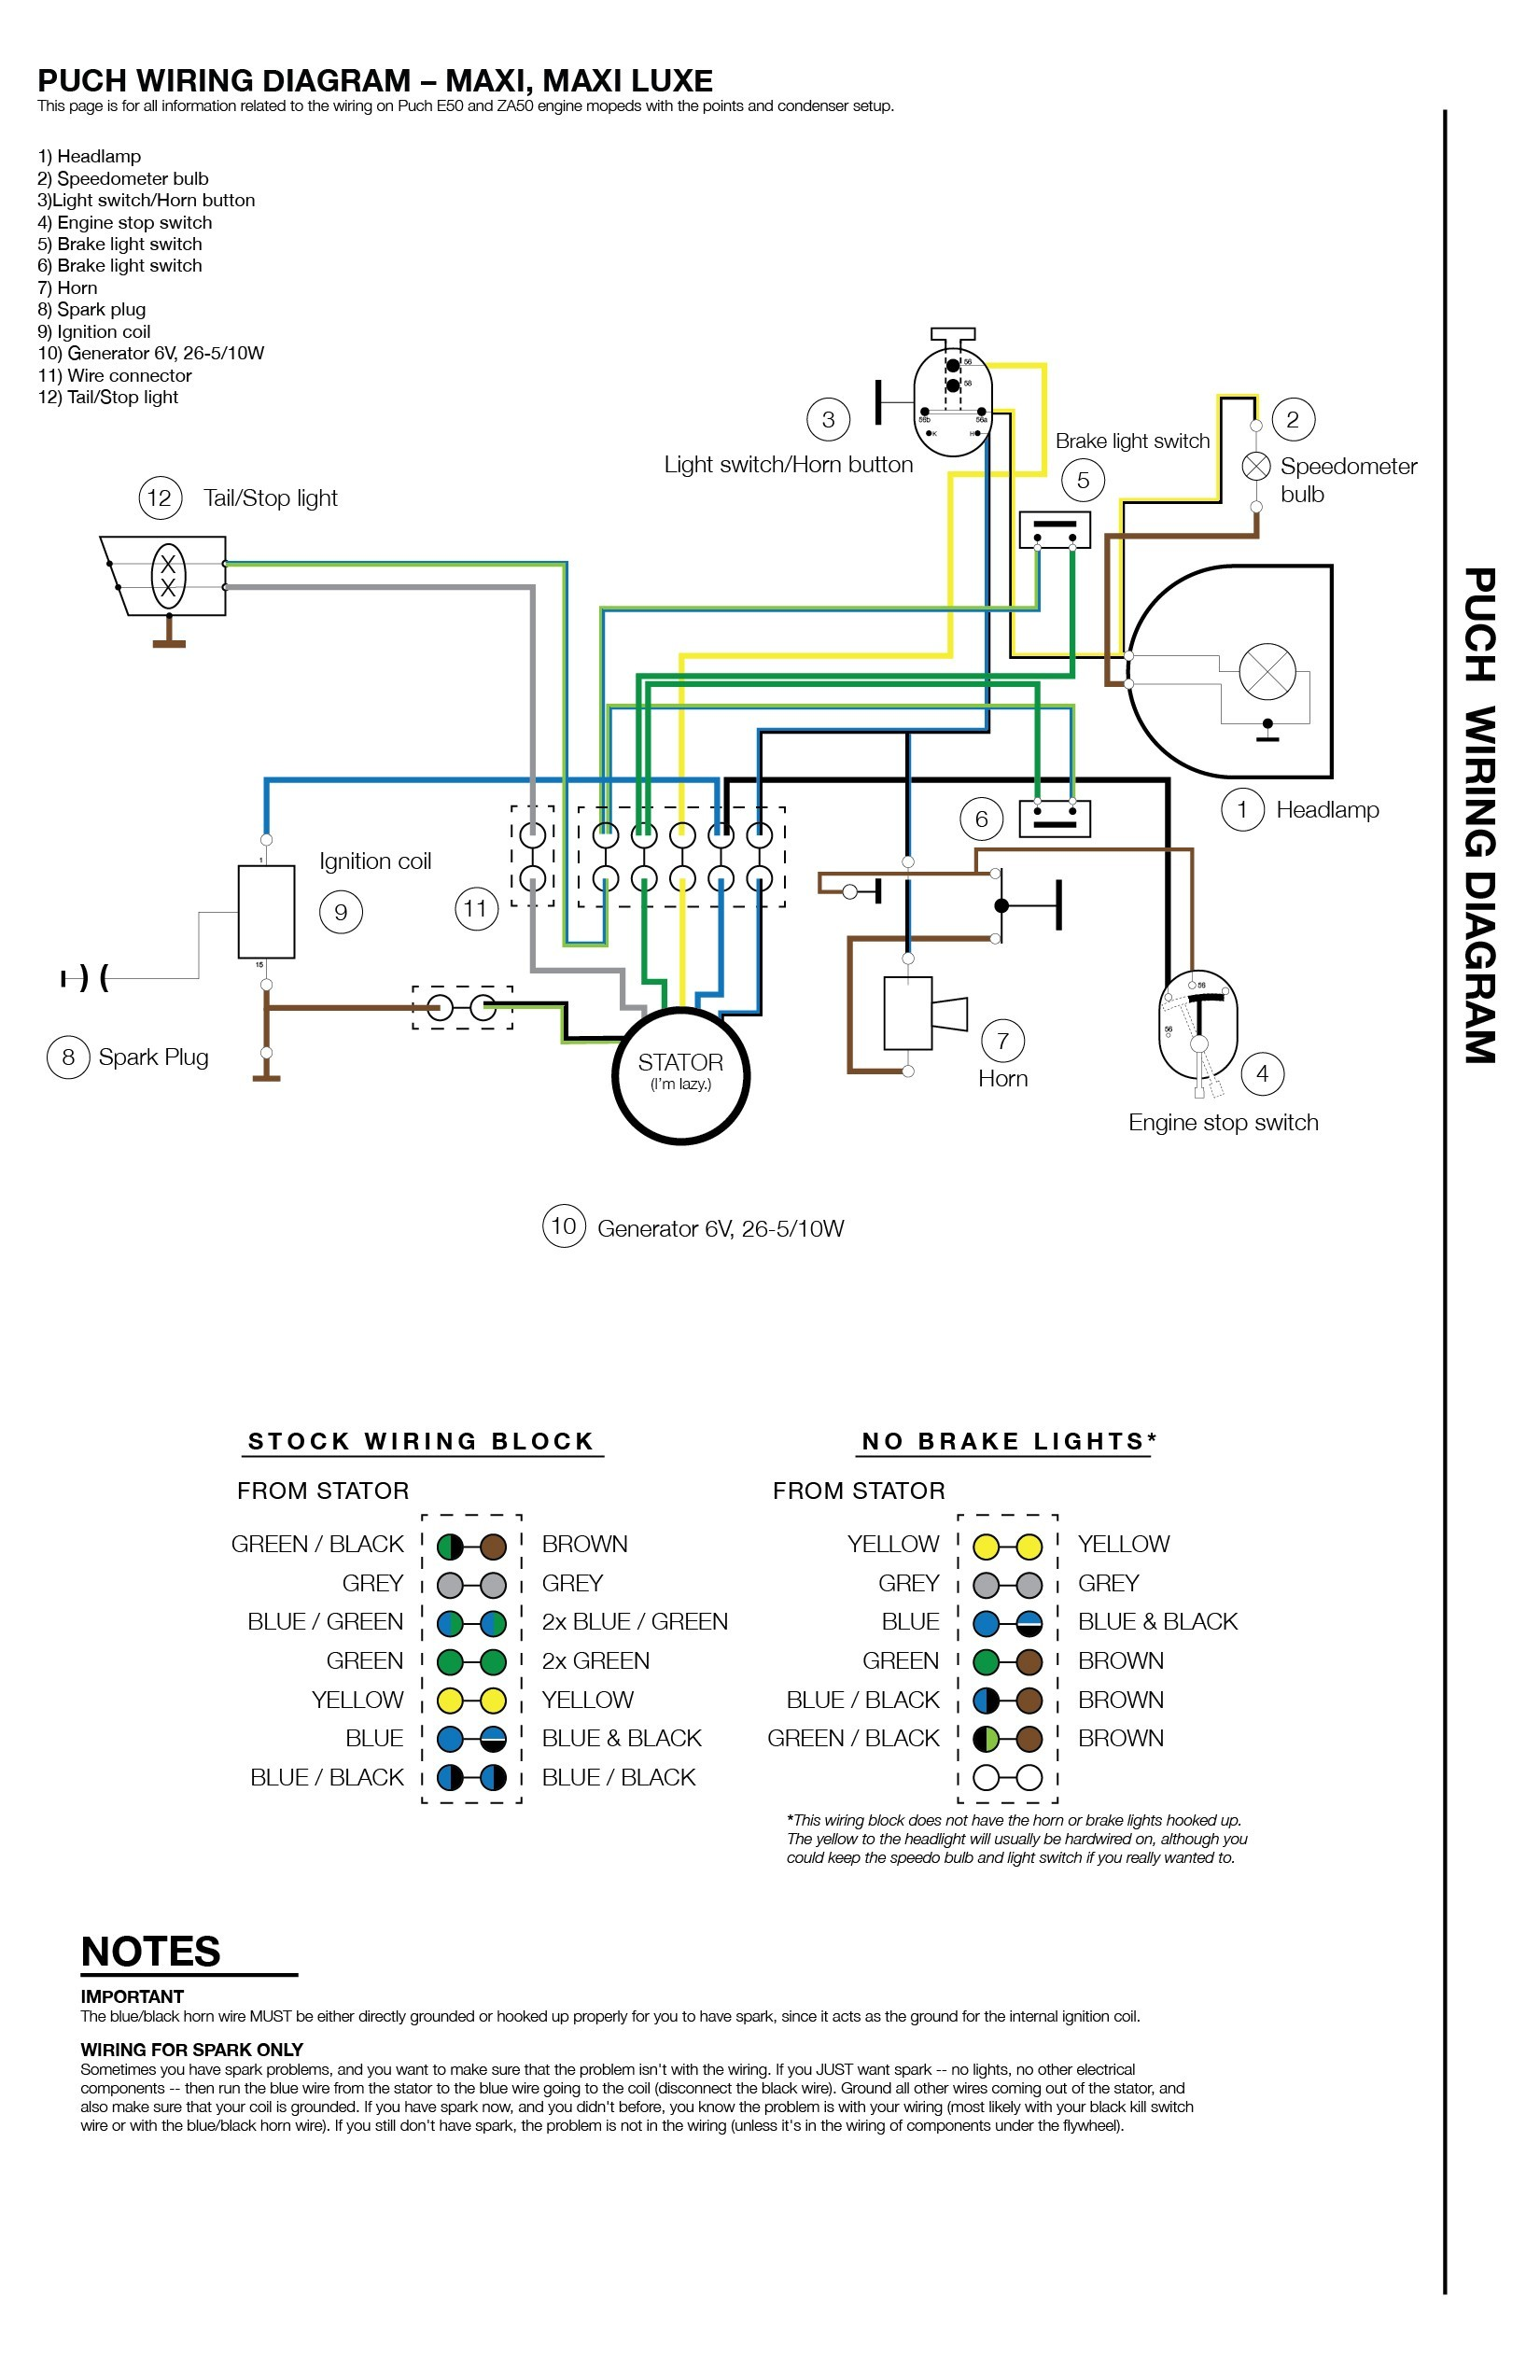 Ford Ranger Trailer Wiring Harness Diagram from detoxicrecenze.com